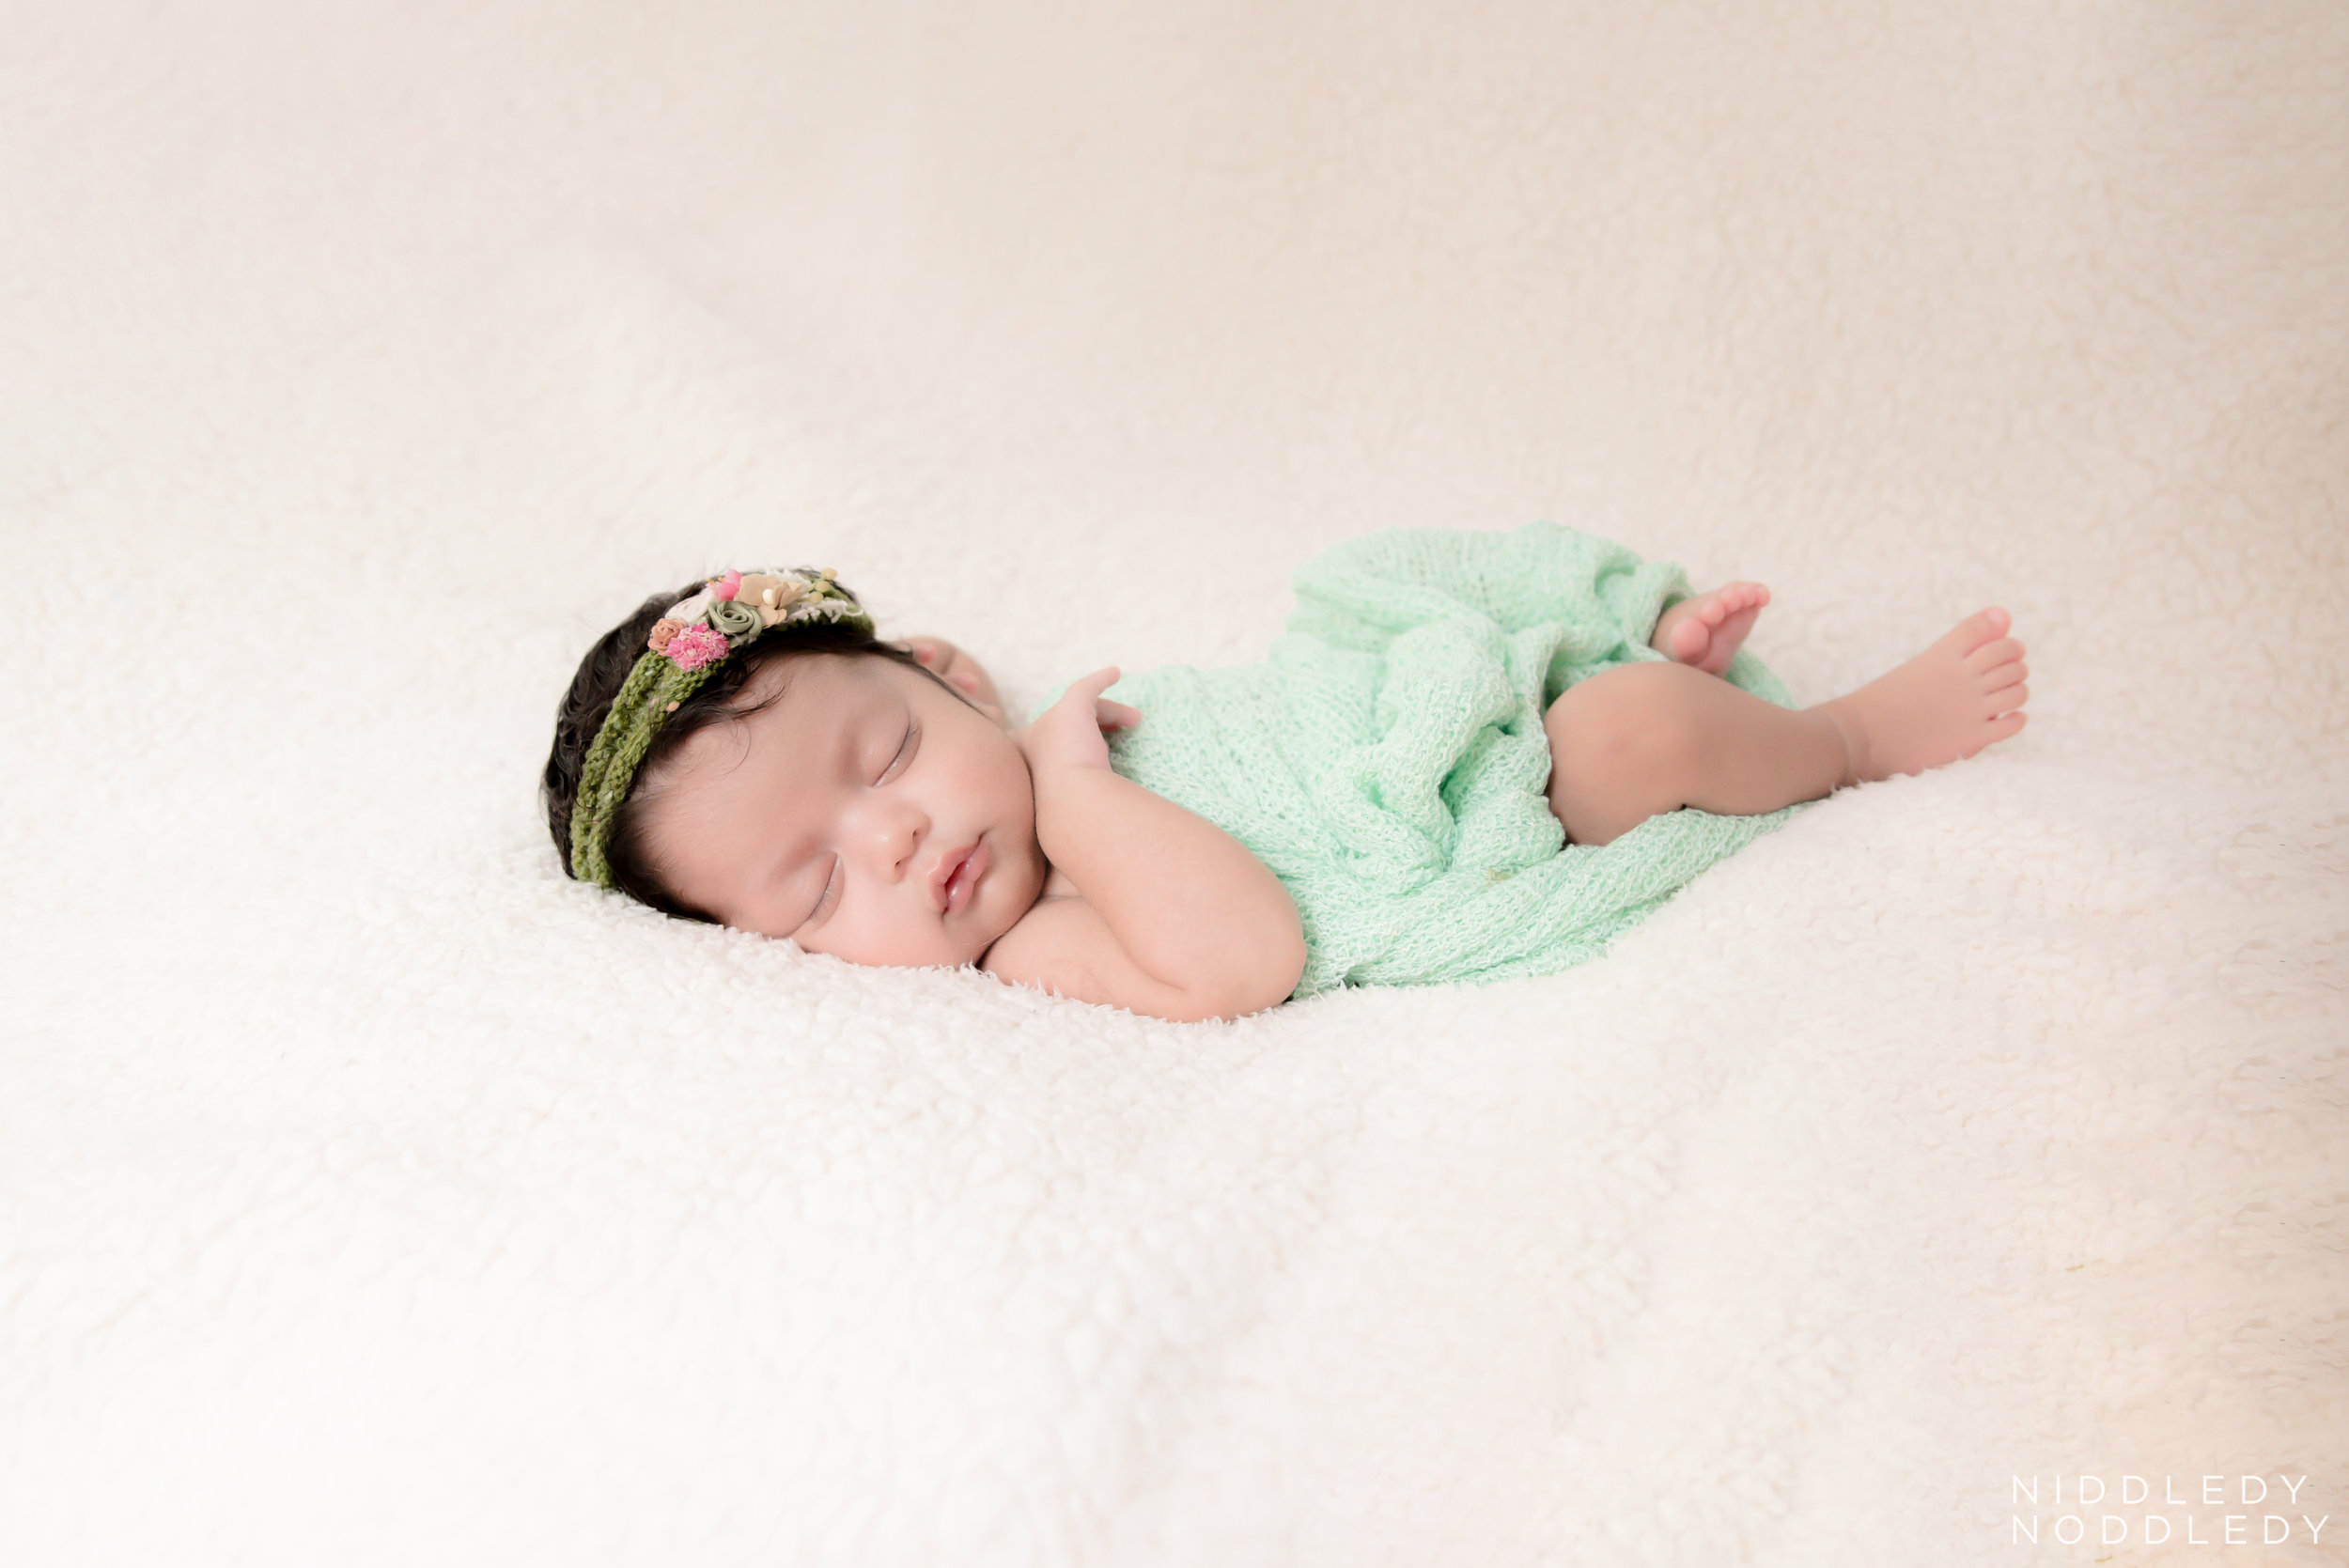 Sumedha Newborn Photoshoot ❤ NiddledyNoddledy.com ~ Bumps to Babies Photography, Kolkata - 12.jpg